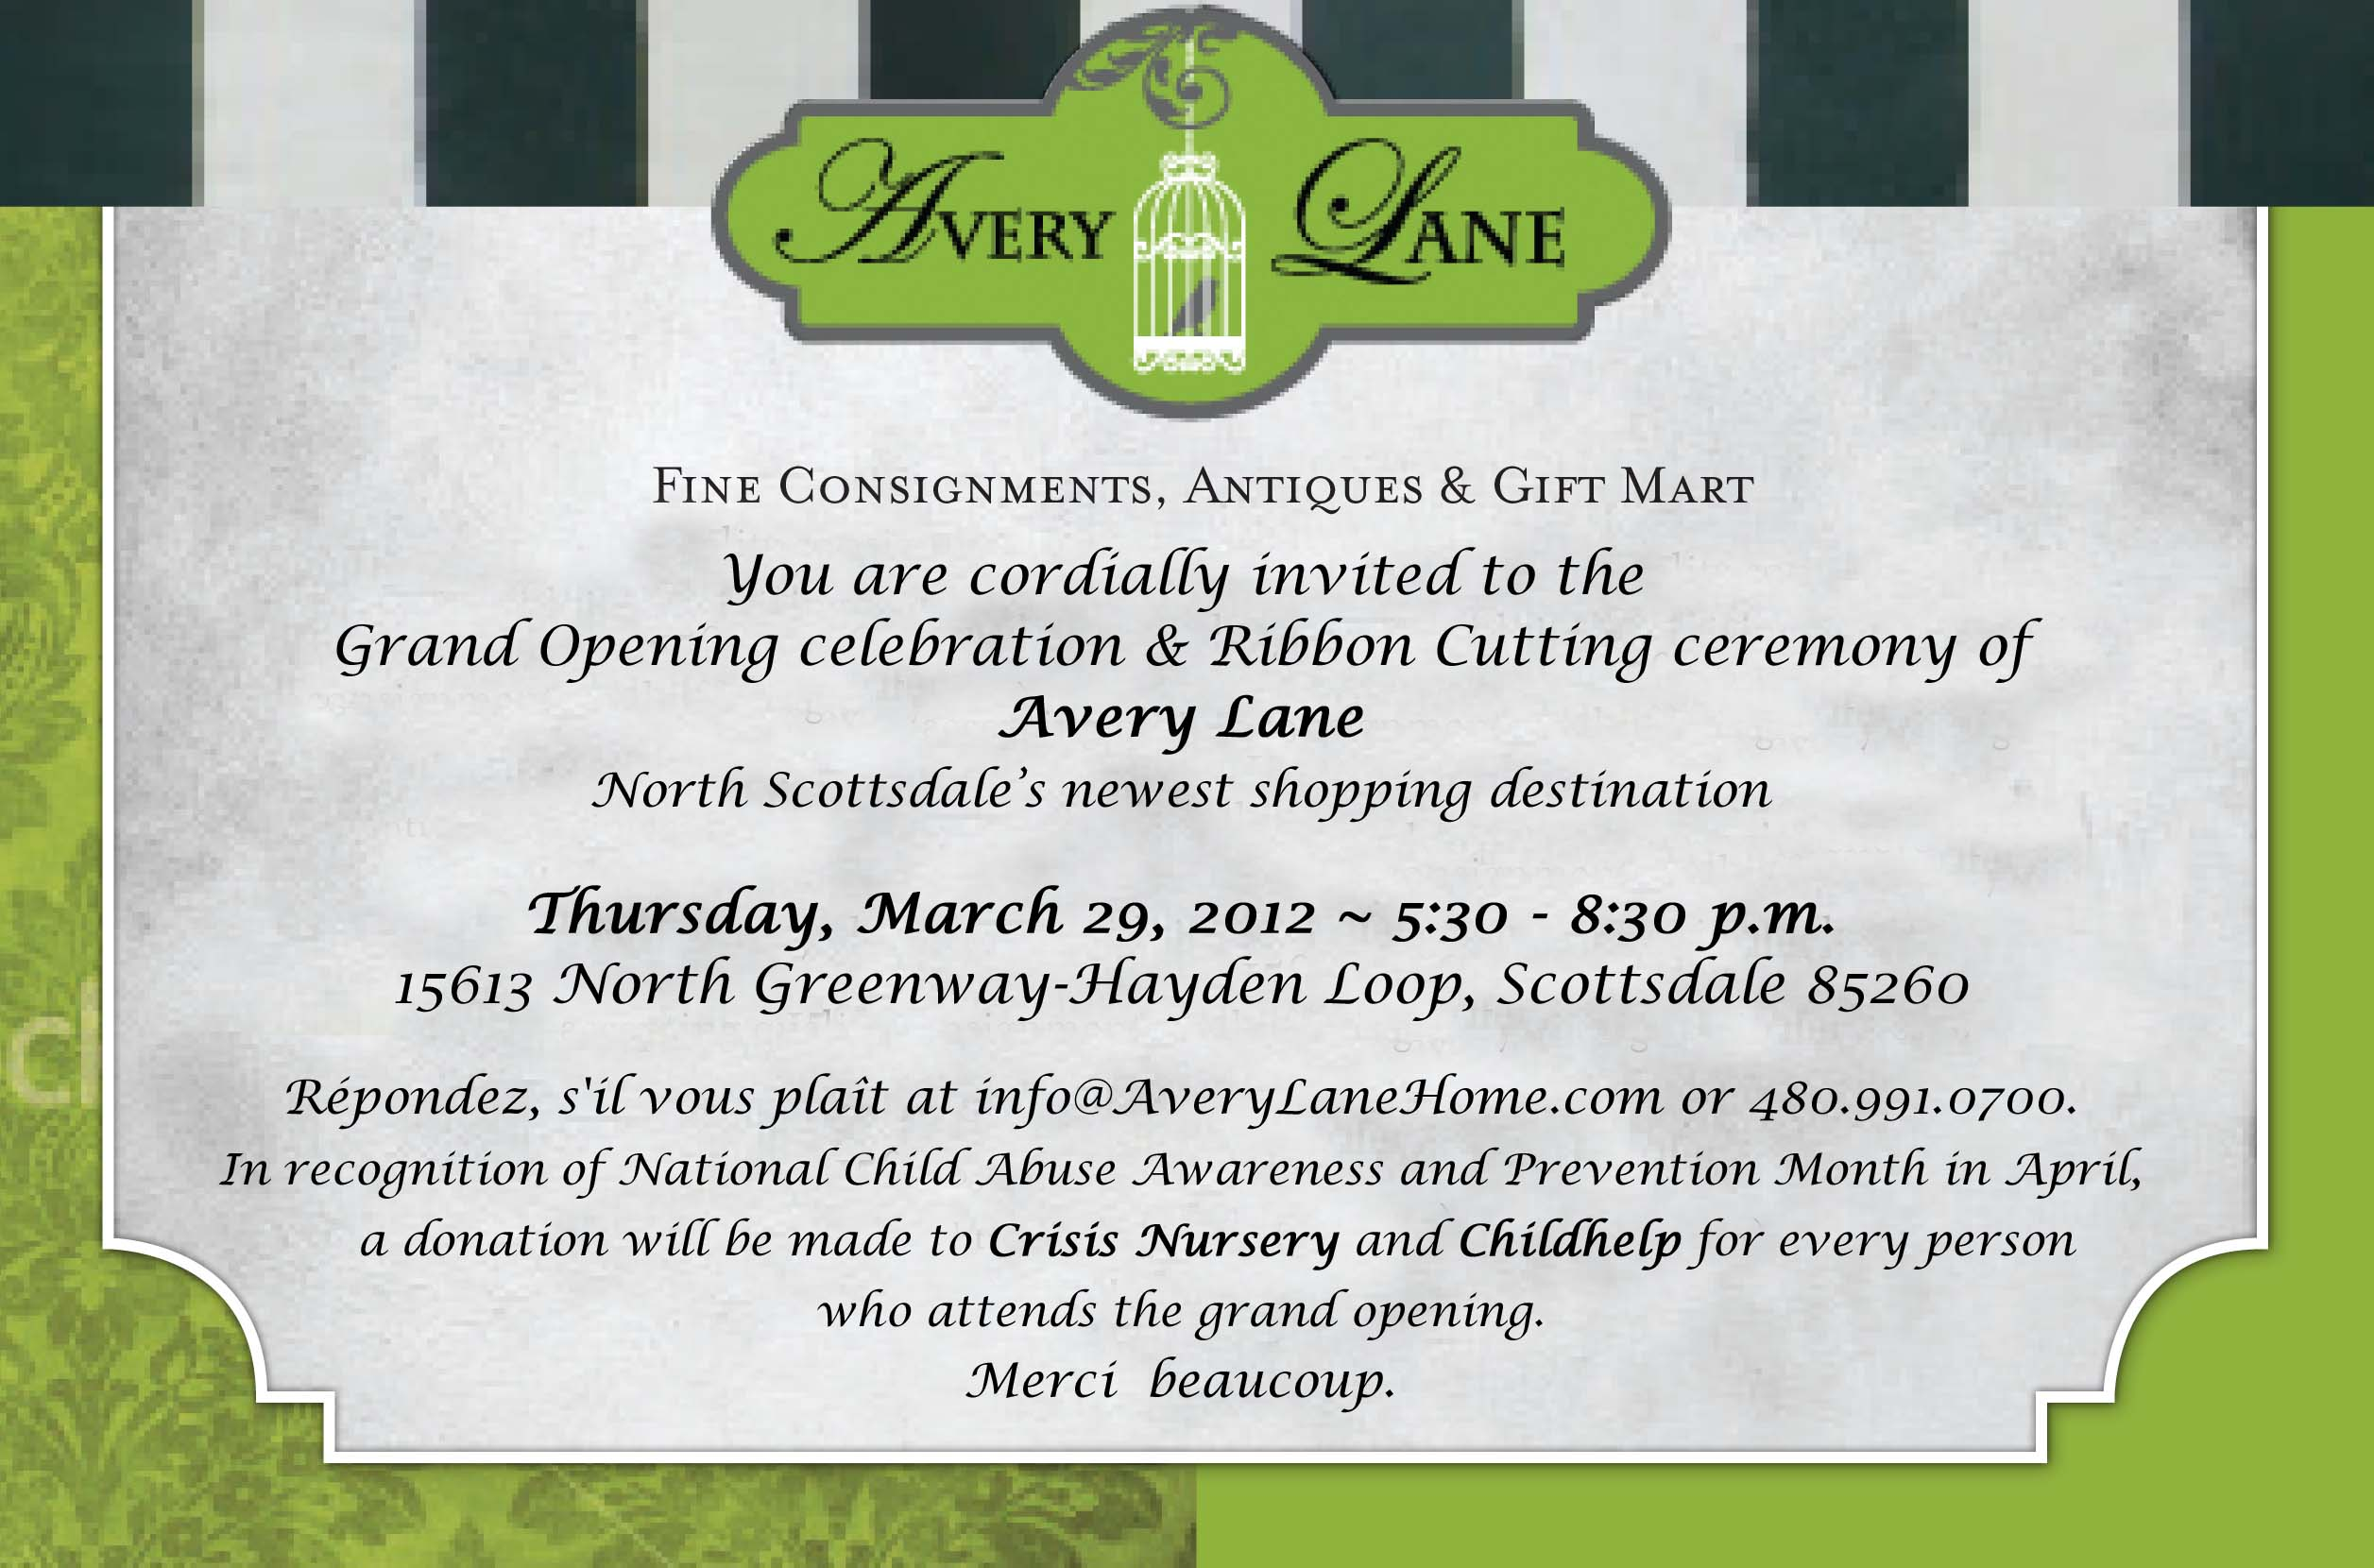 Avery Lane Grand Opening Invitation